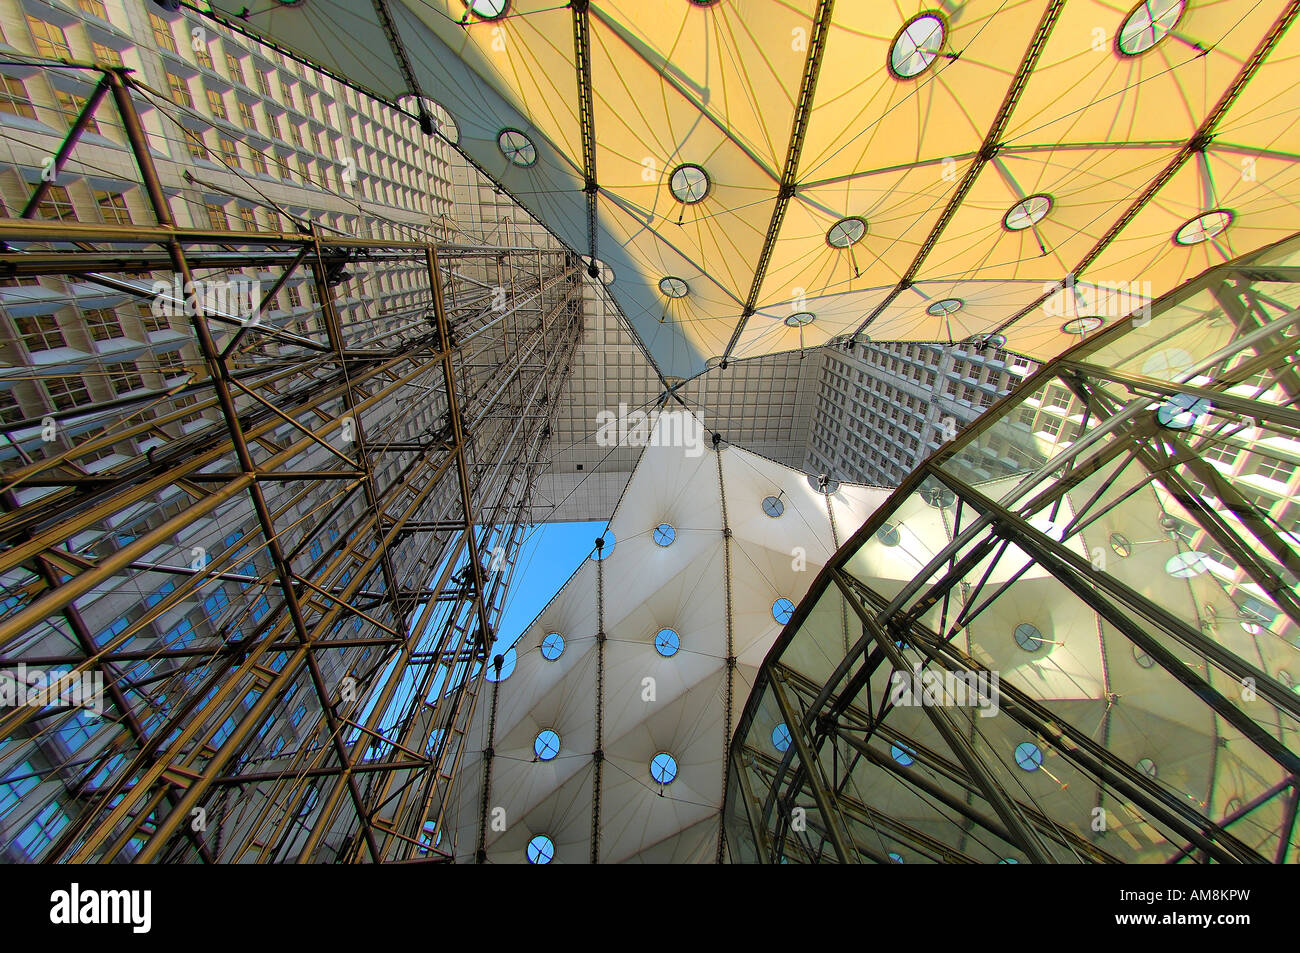 The Grande Arche at La Defense, seen from within the Arch - Stock Image